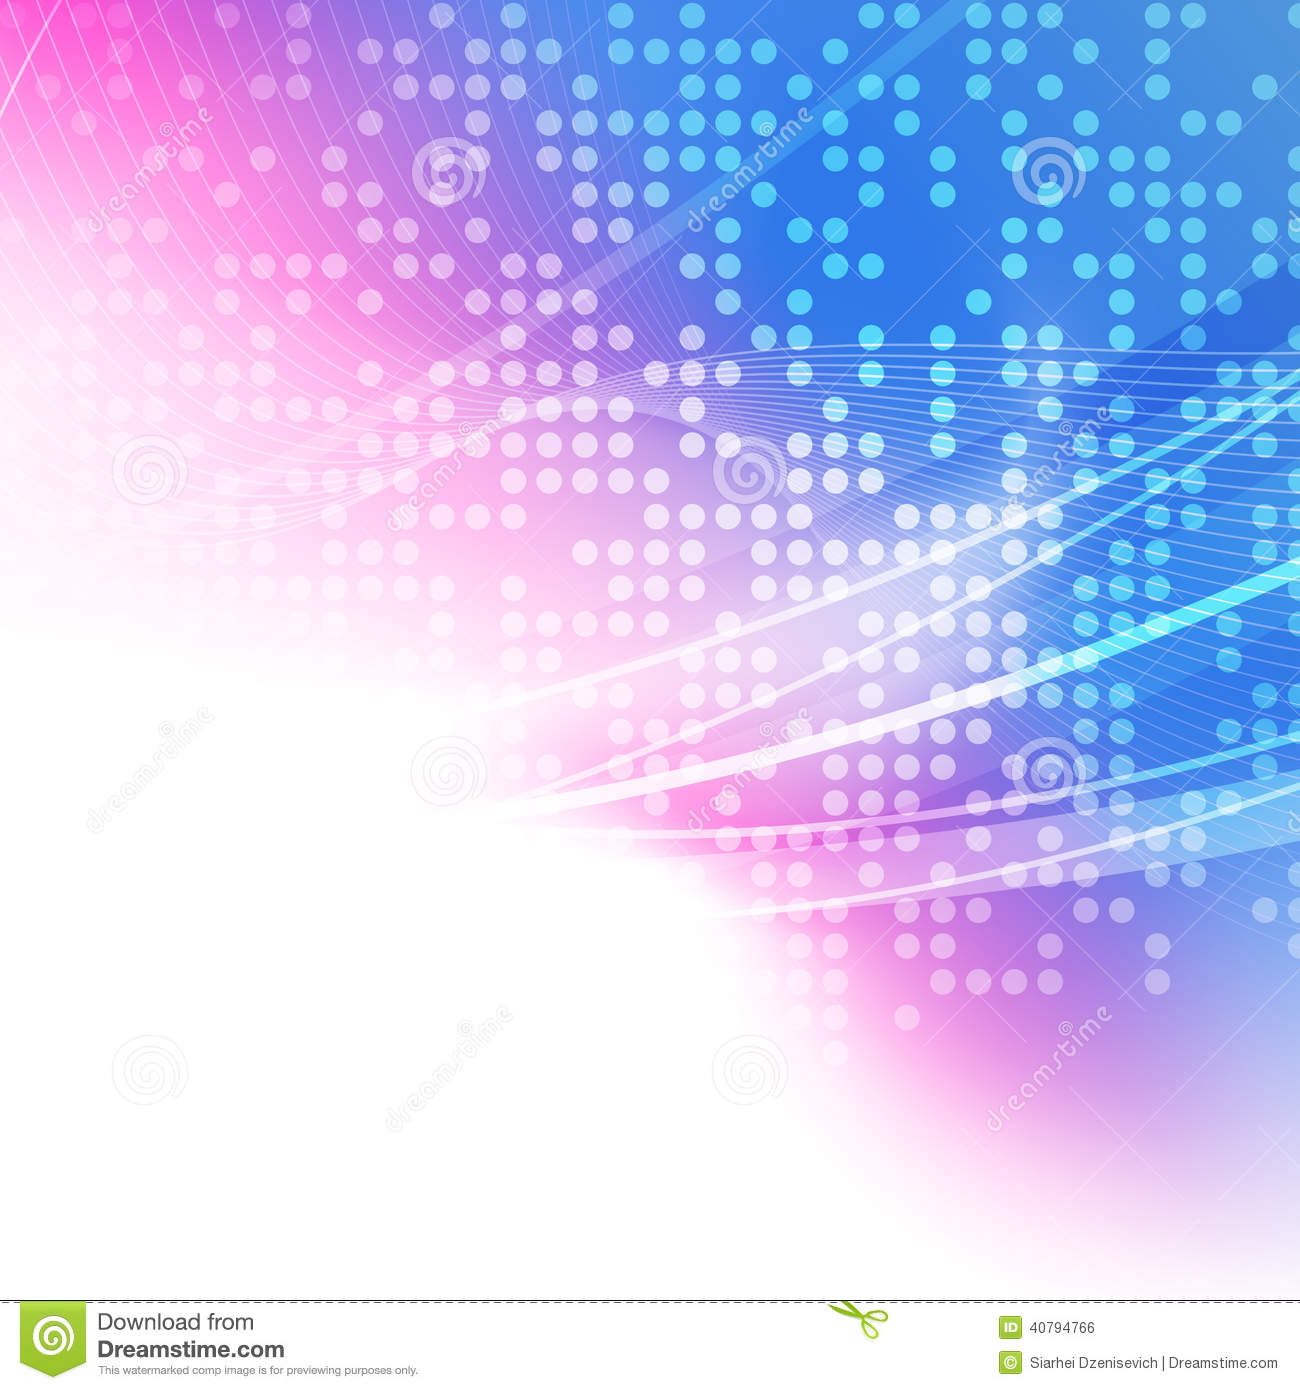 Abstract bright pink blue white background stock vector for Bright pink wallpaper uk